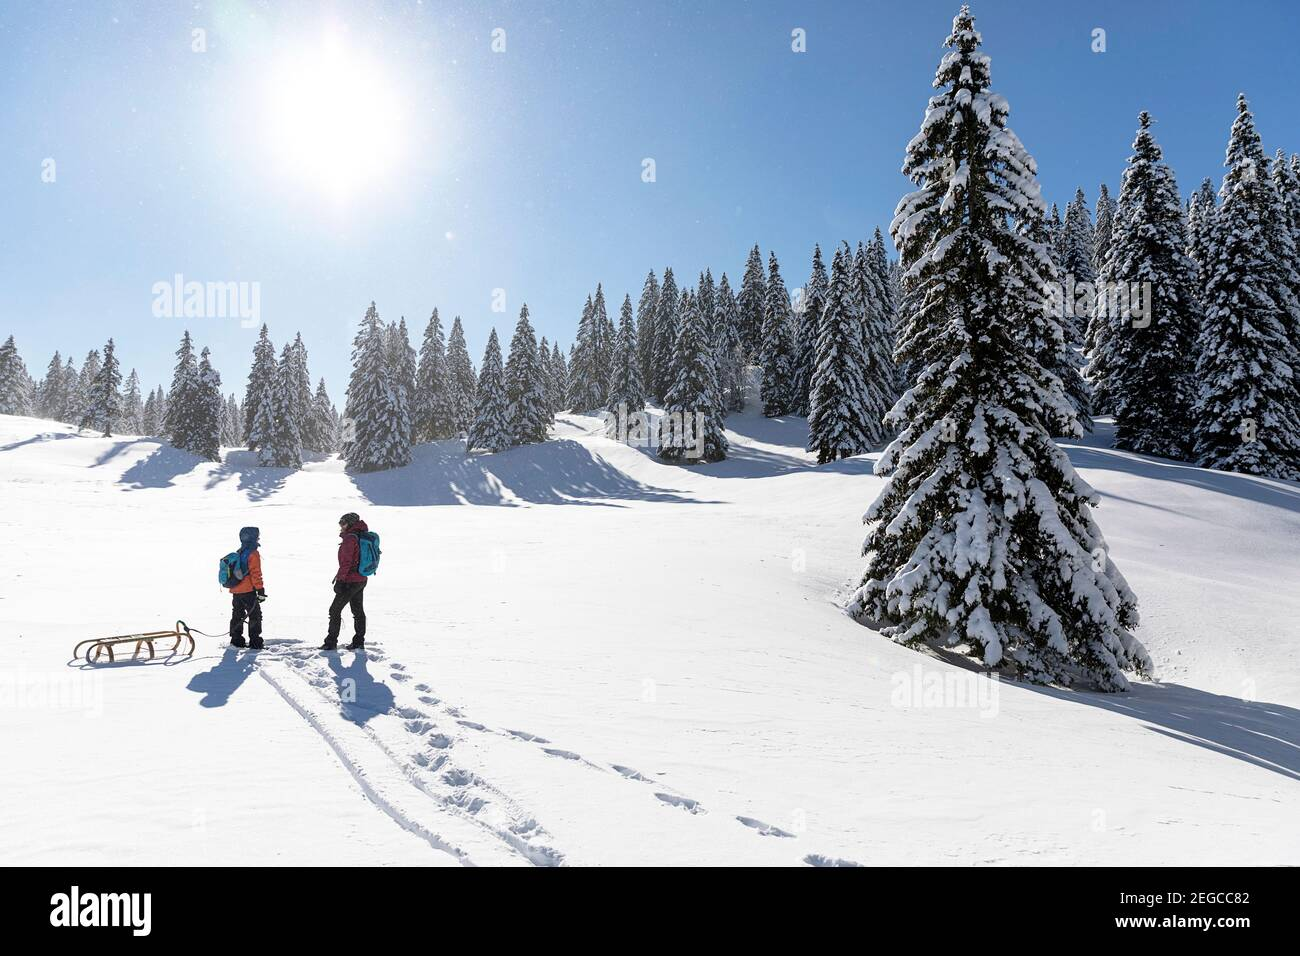 Mother and son towing a sled in the snow, winter fairytale landscape at Velika planina, Slovenia Stock Photo